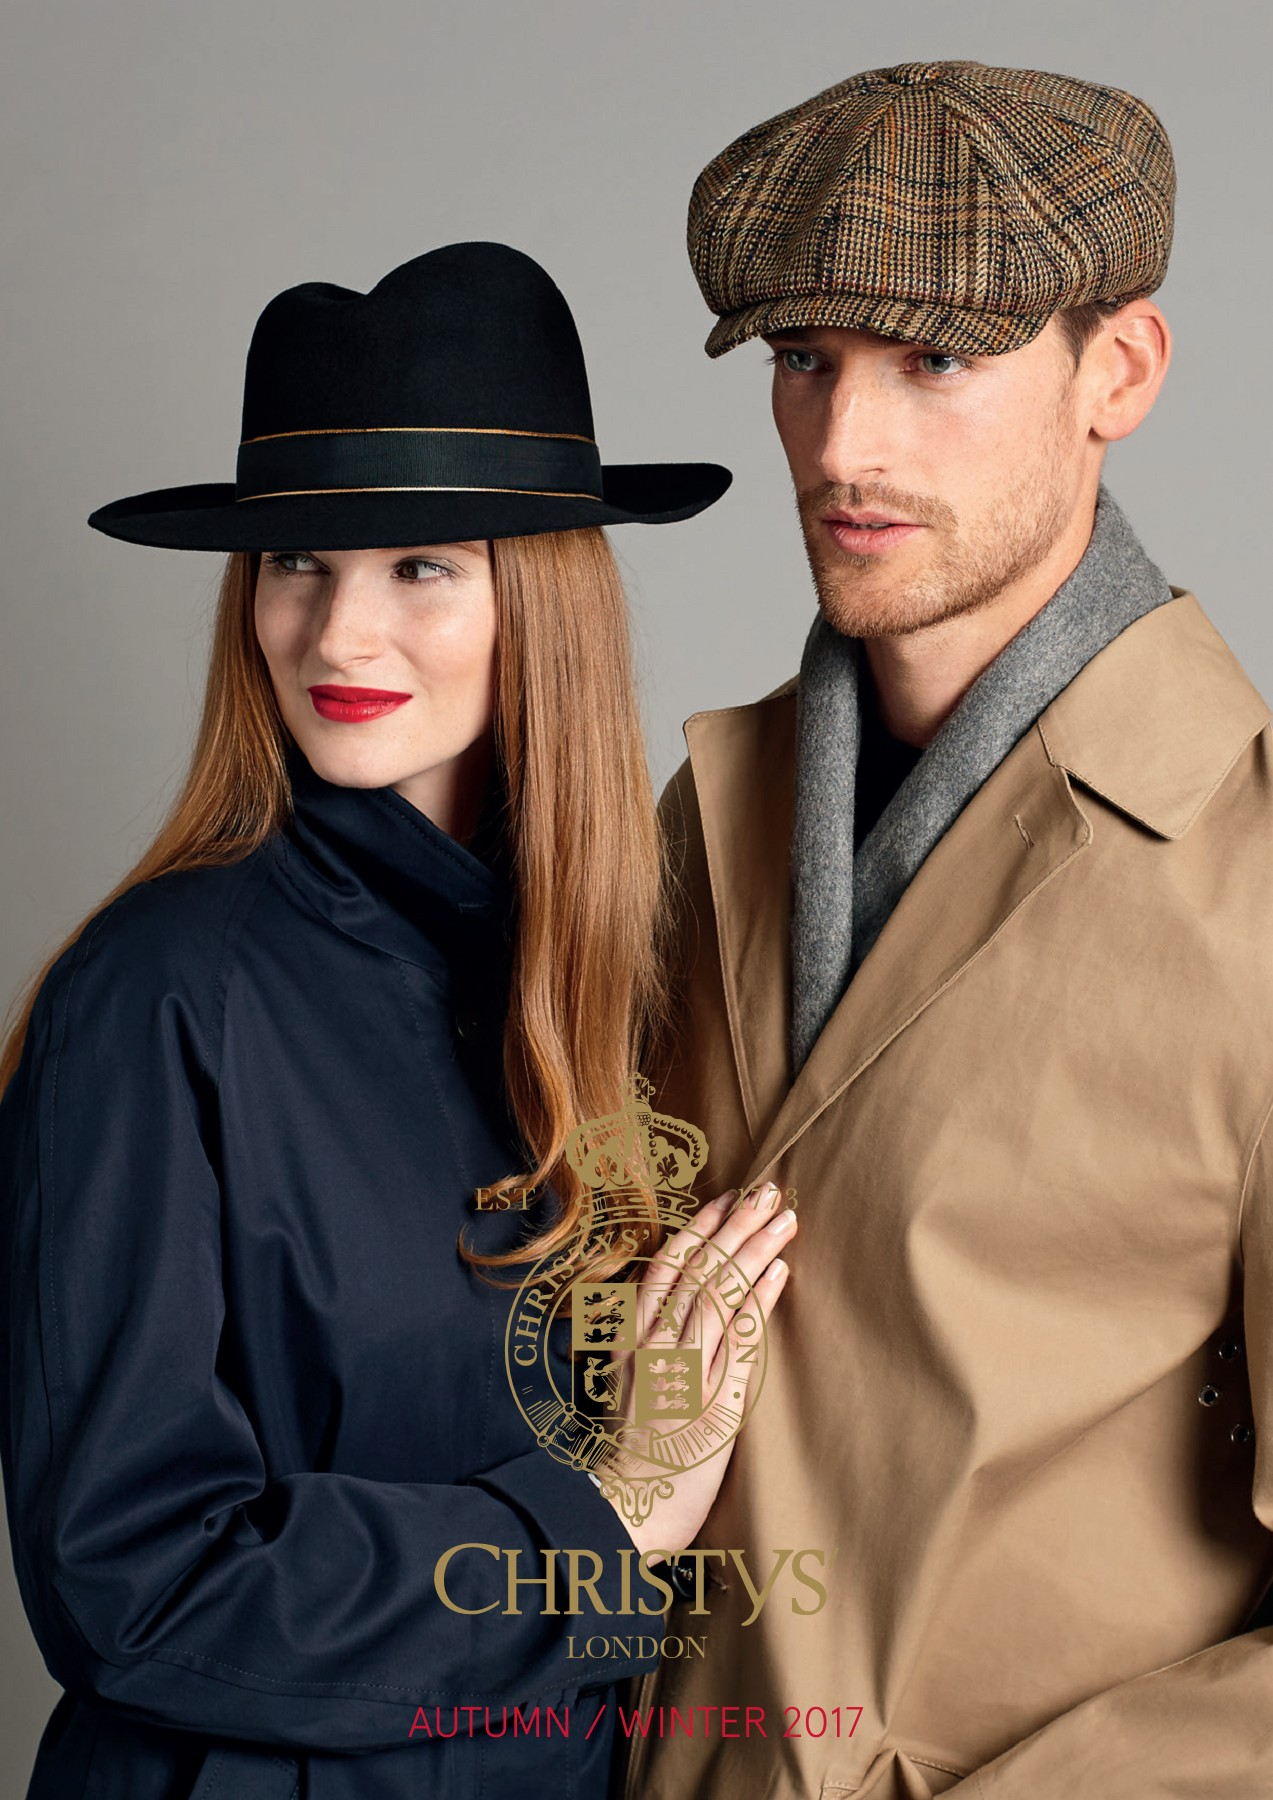 f2f57fd990d630 Christys' London® - Christys' Hats Autumn-Winter 2017 Collection ...